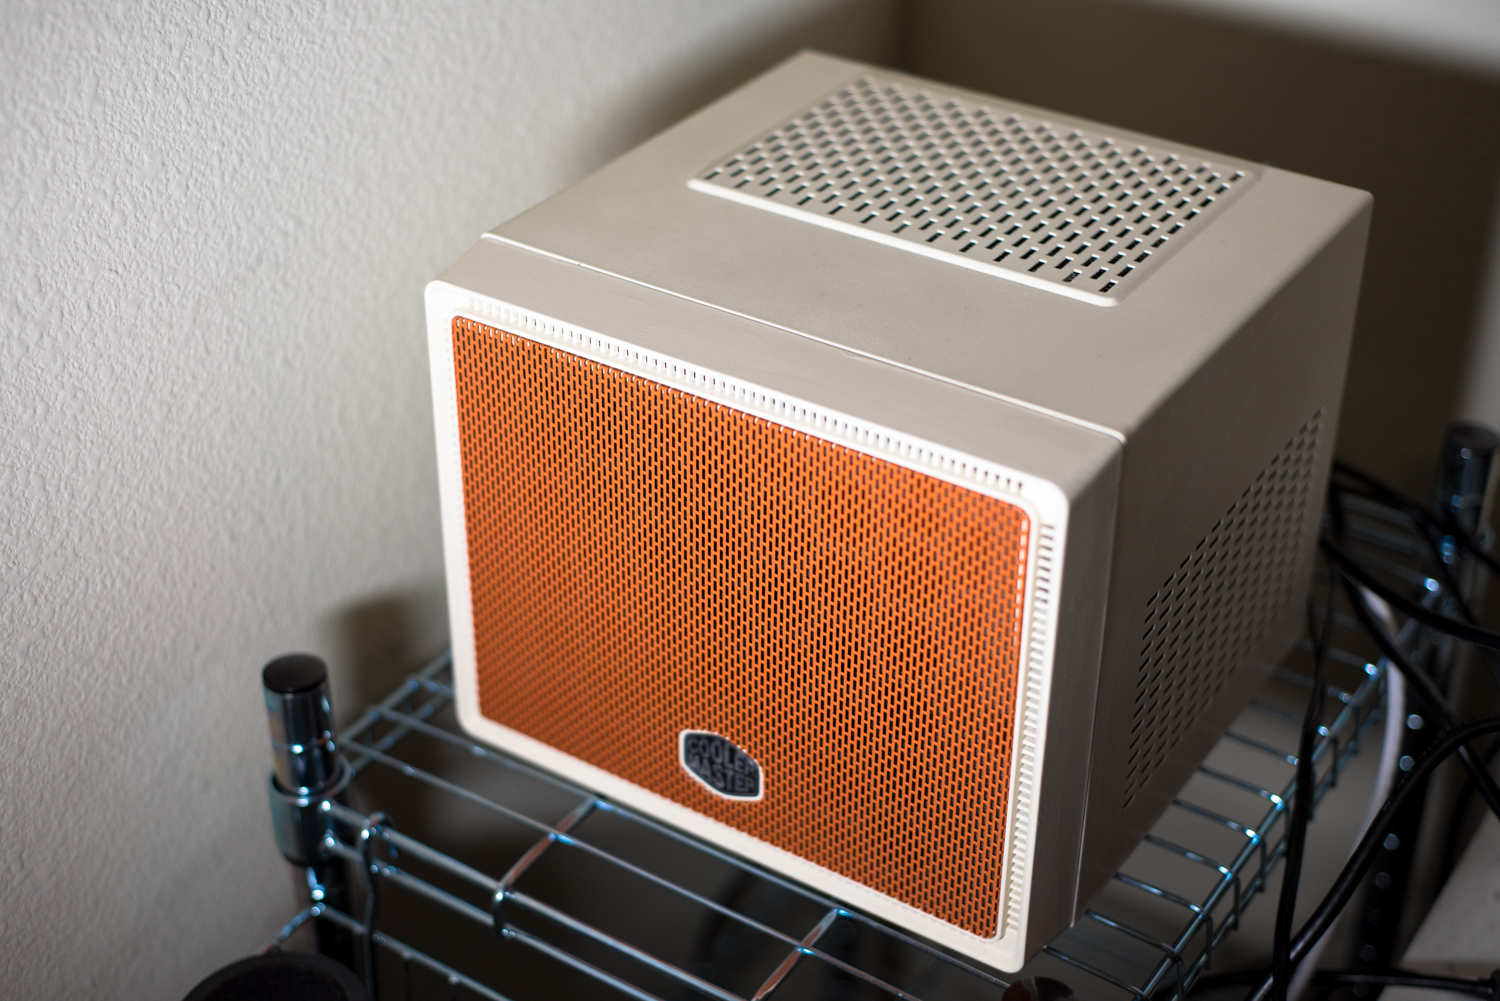 Orange and off white mITX Linux Computer